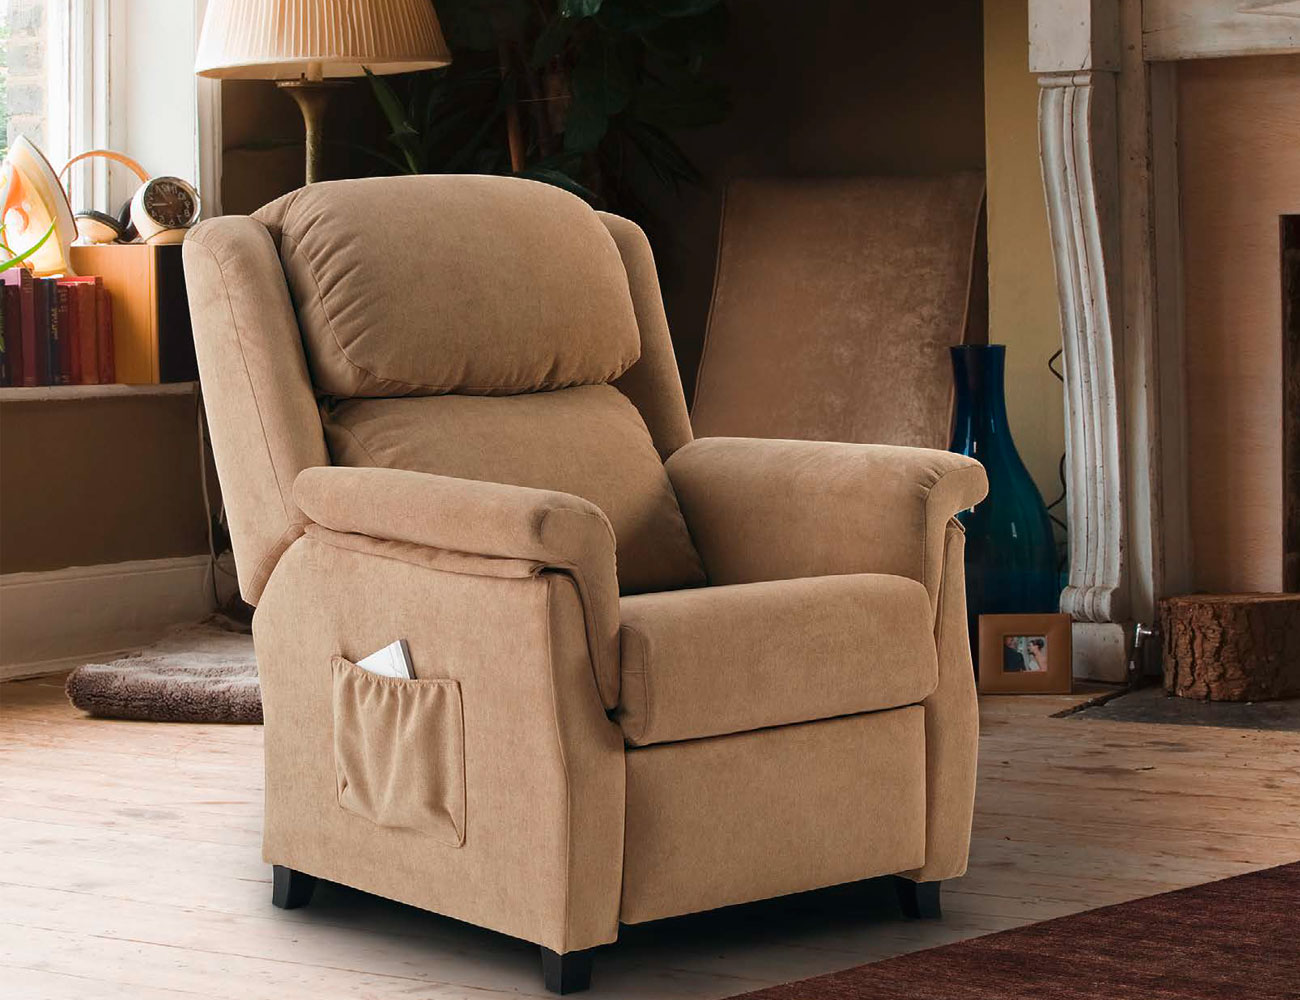 Sillon relax manual bianca 111